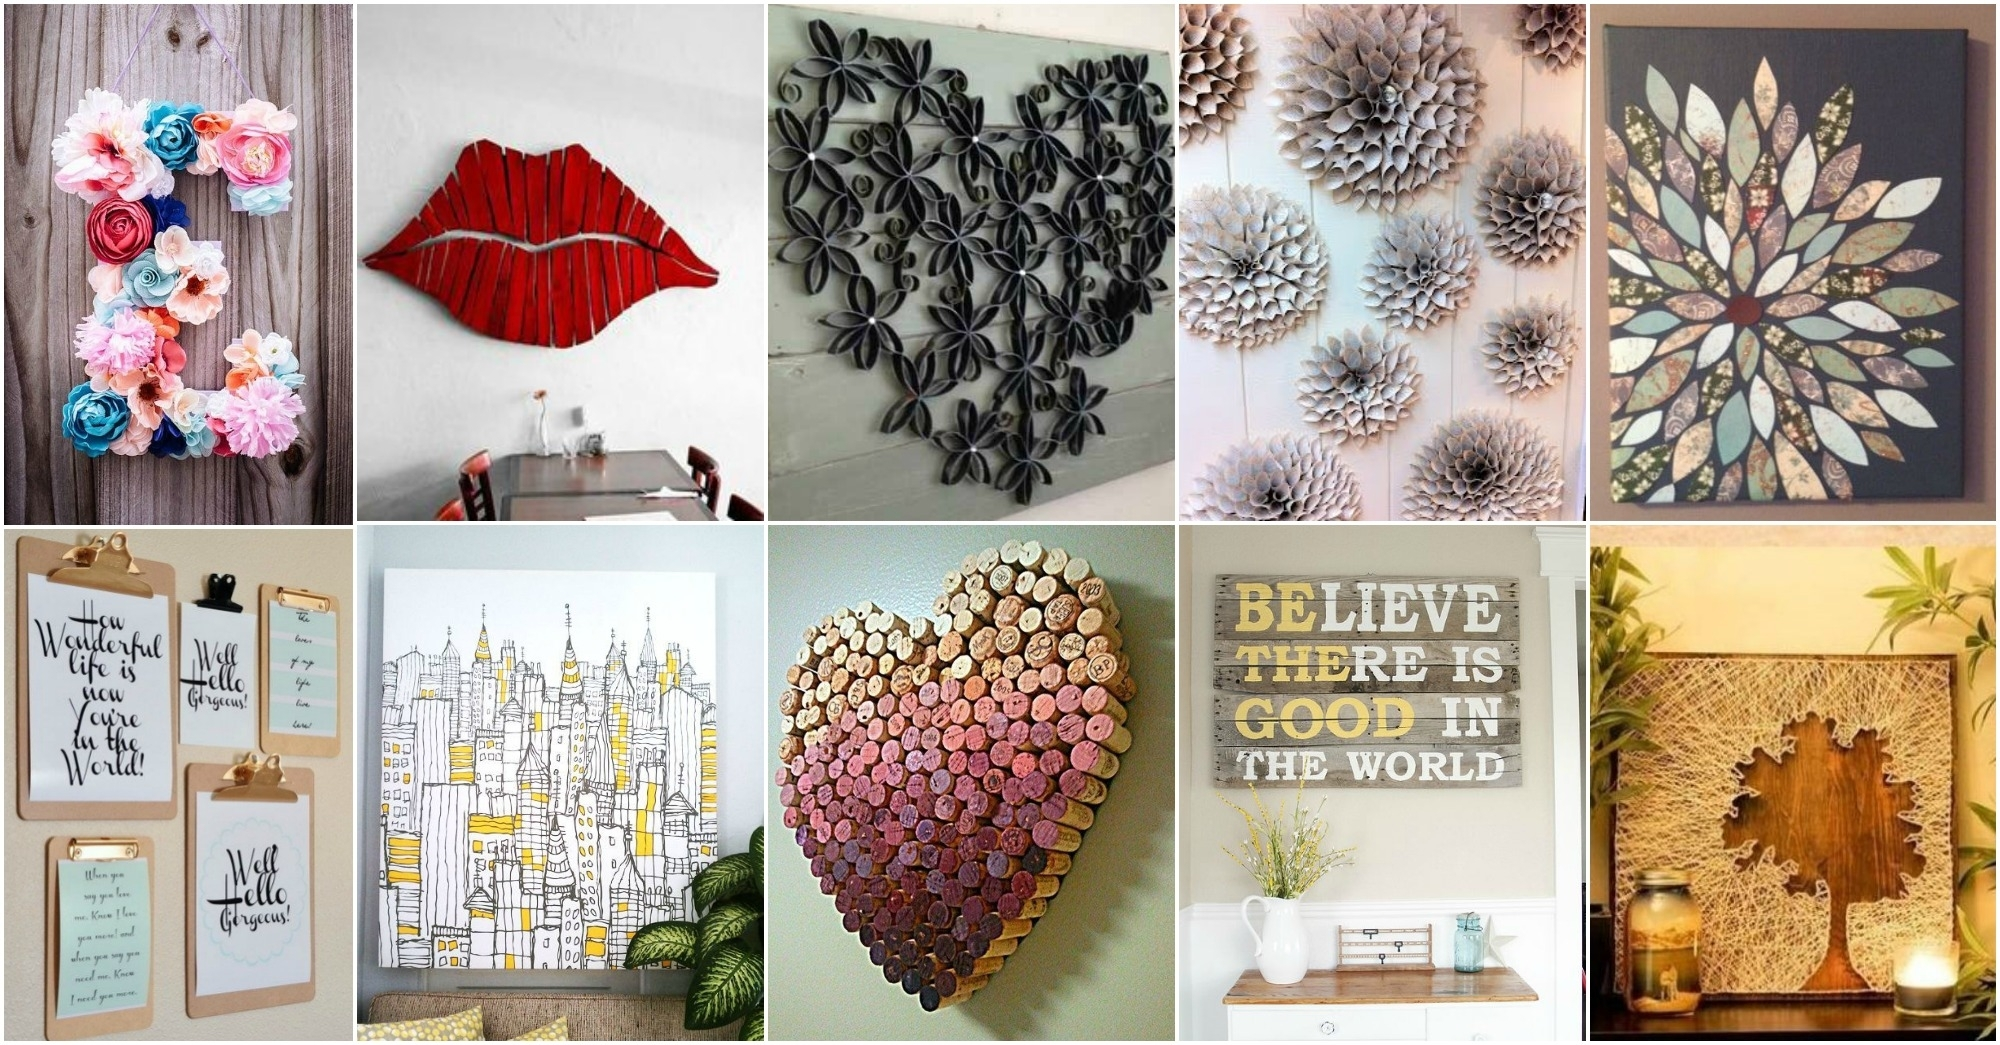 More Amazing Diy Wall Art Ideas In 2017 Diy Wall Art (View 14 of 15)